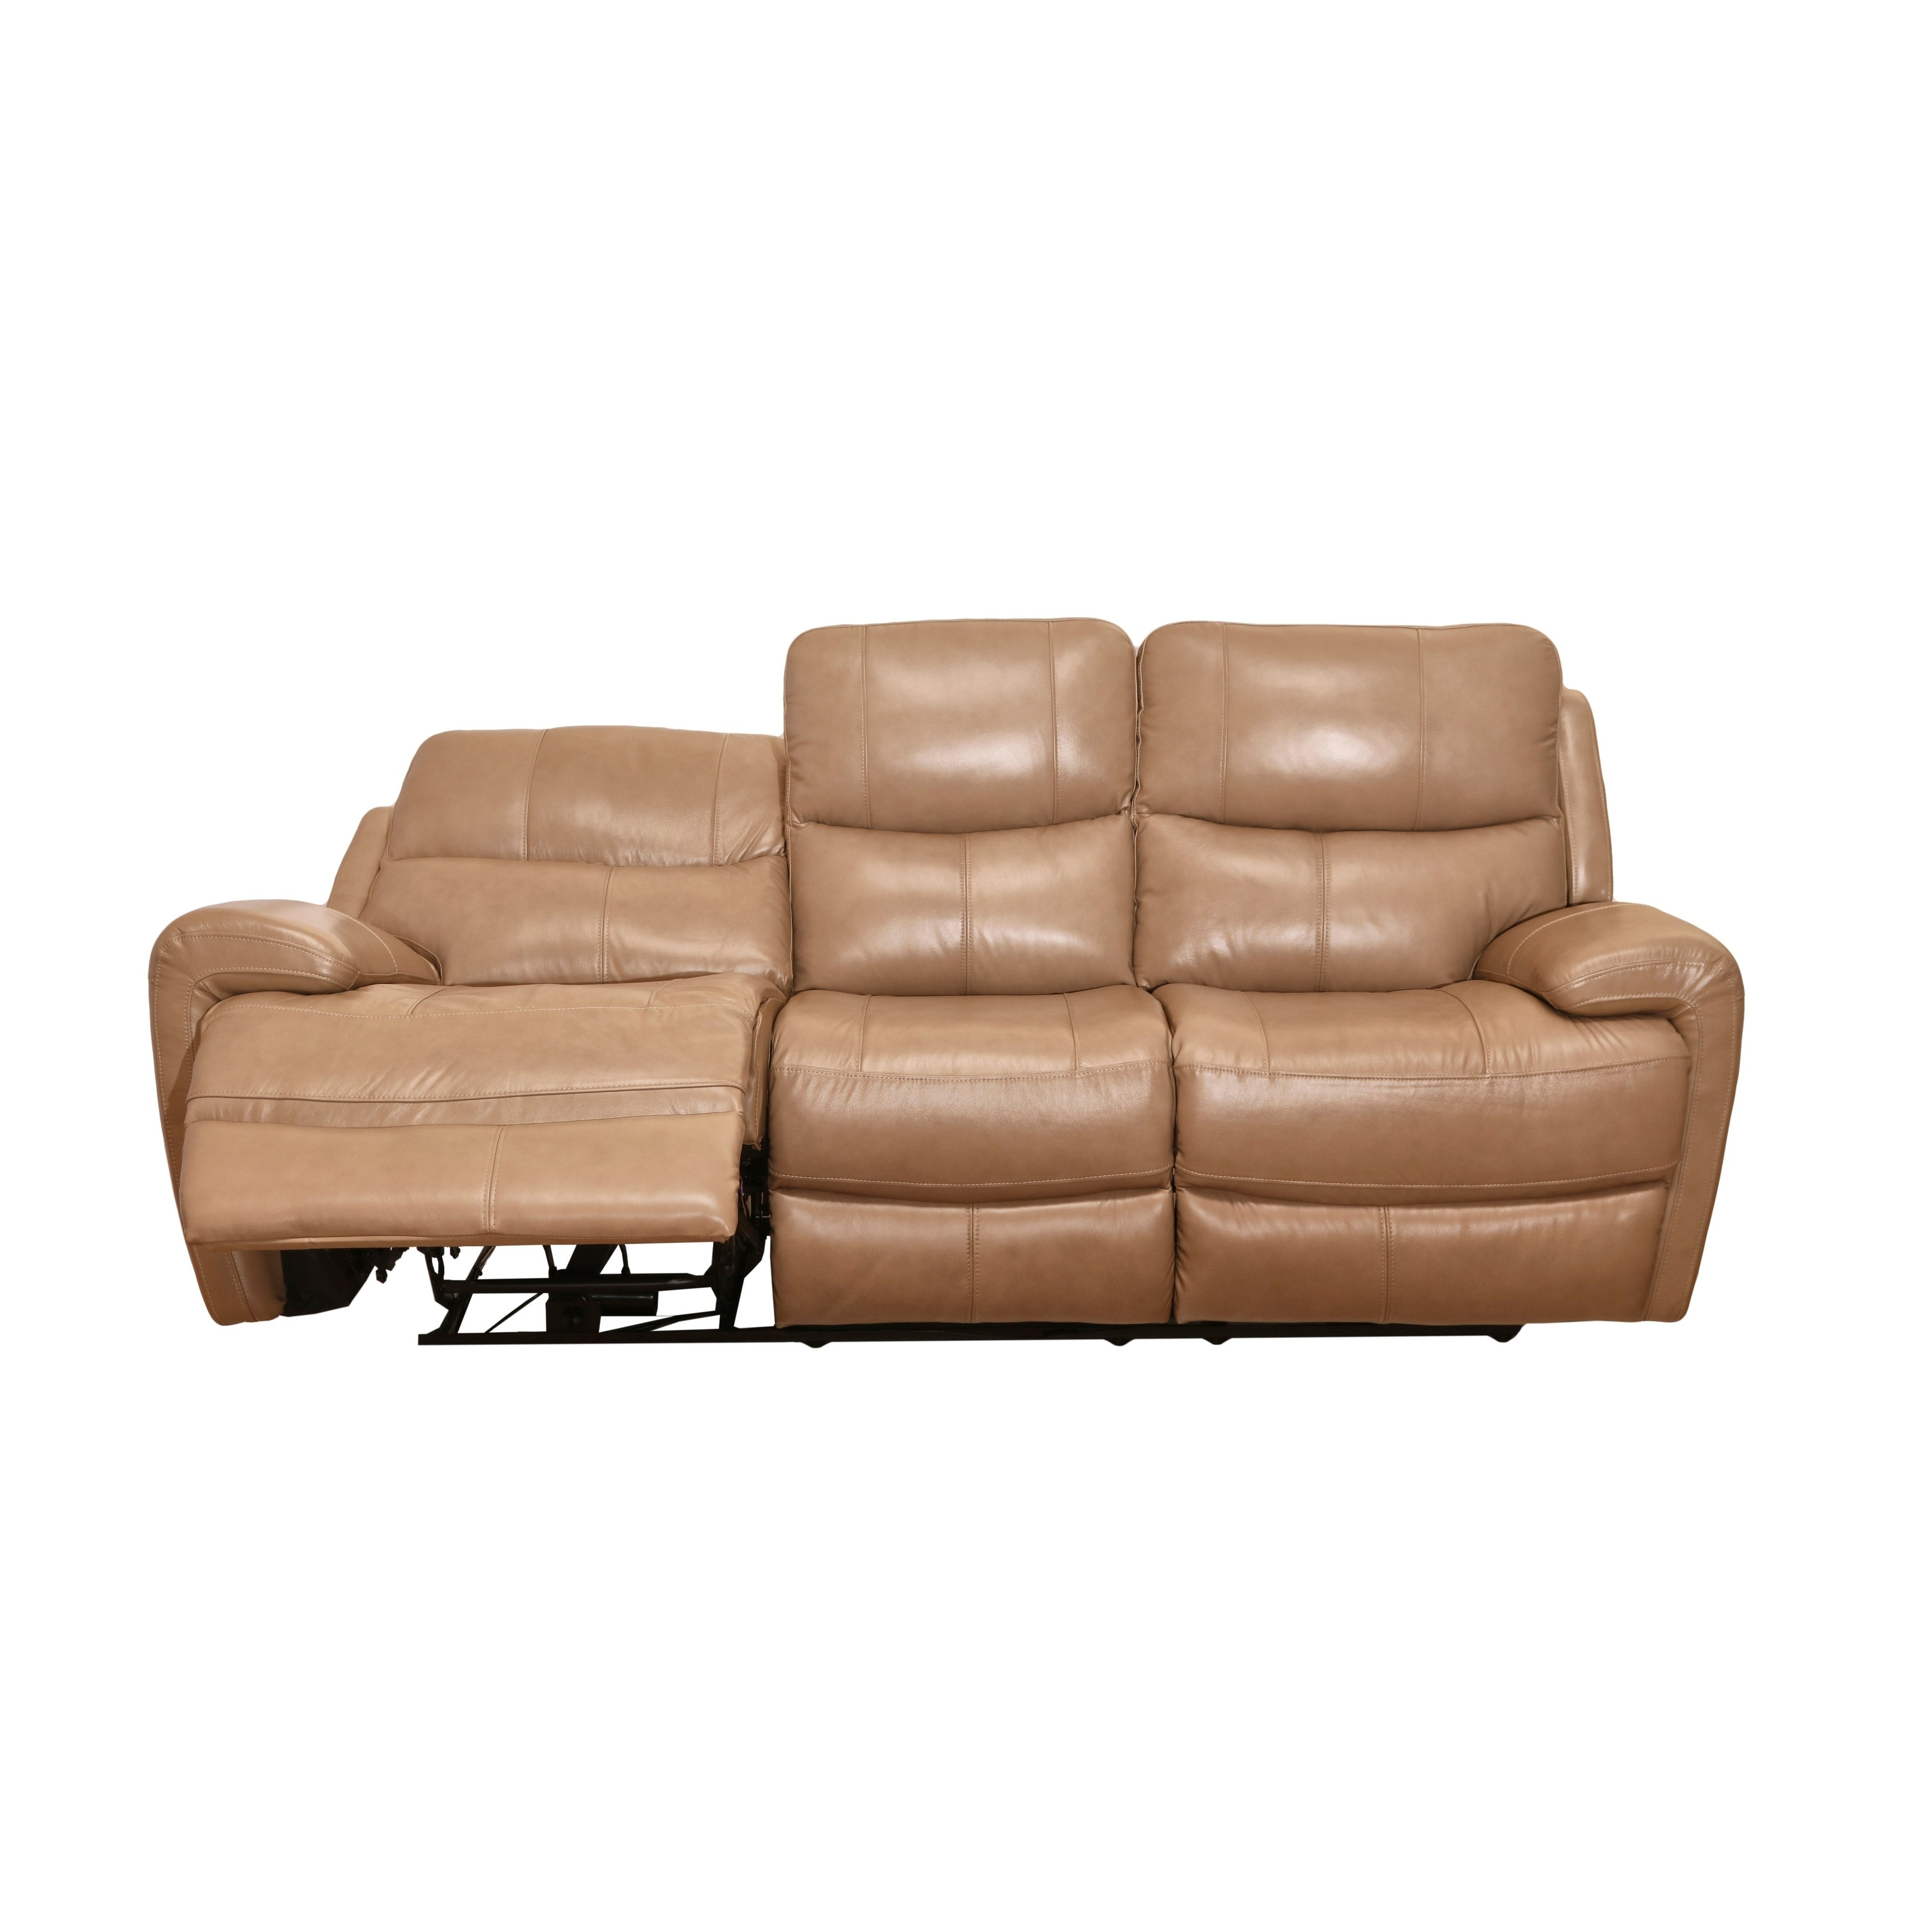 Murphy Top Grain Leather Reclining Sofa Manual Mahogany Tan Free Shipping Today 24361144